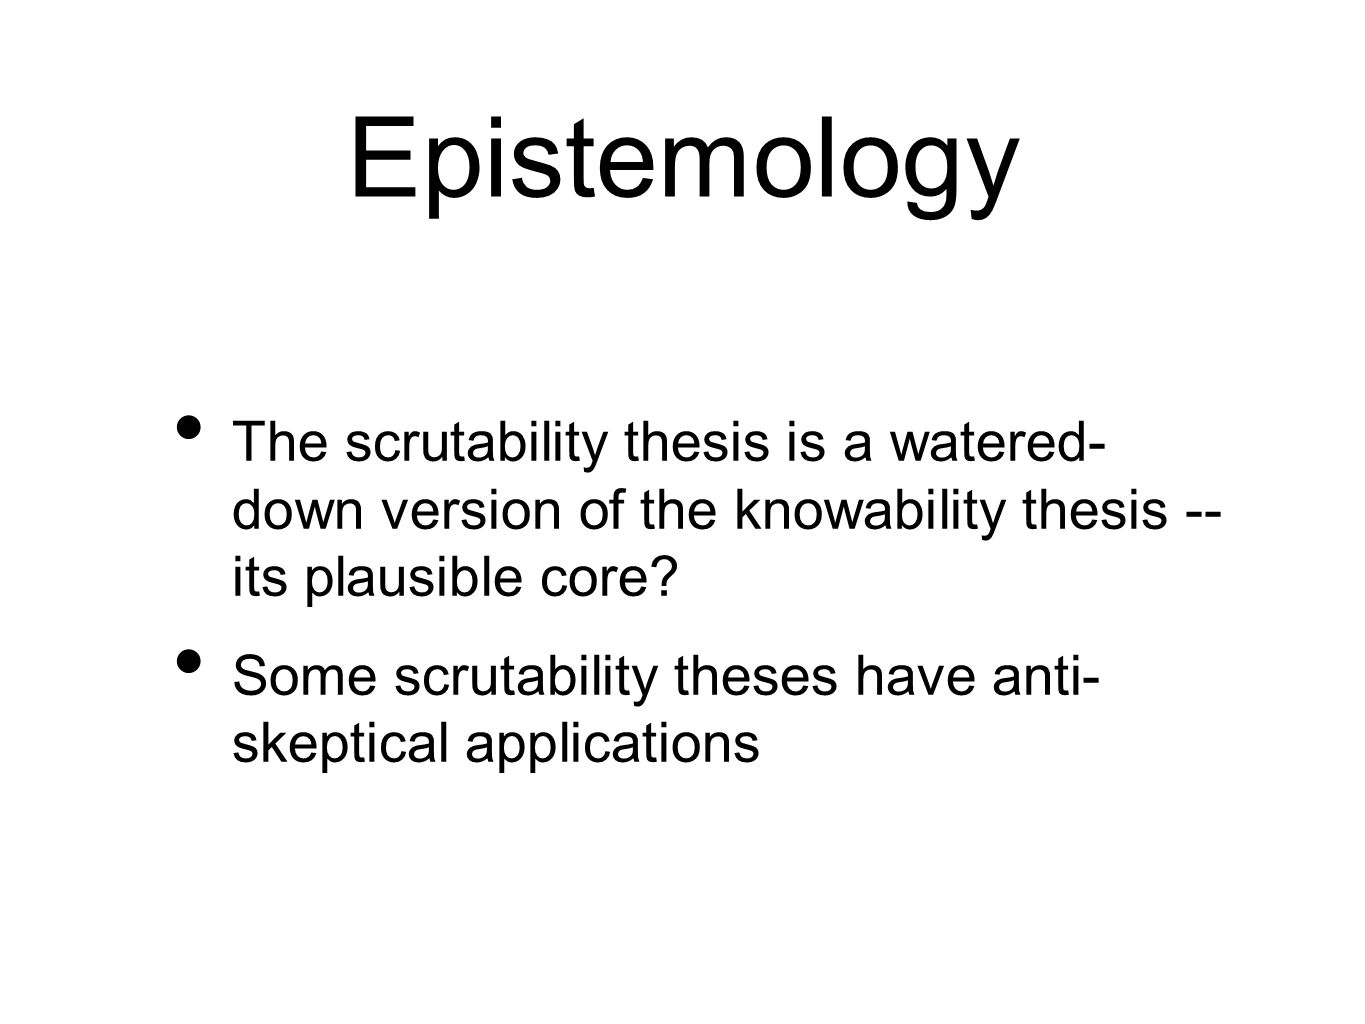 Epistemology The scrutability thesis is a watered- down version of the knowability thesis -- its plausible core